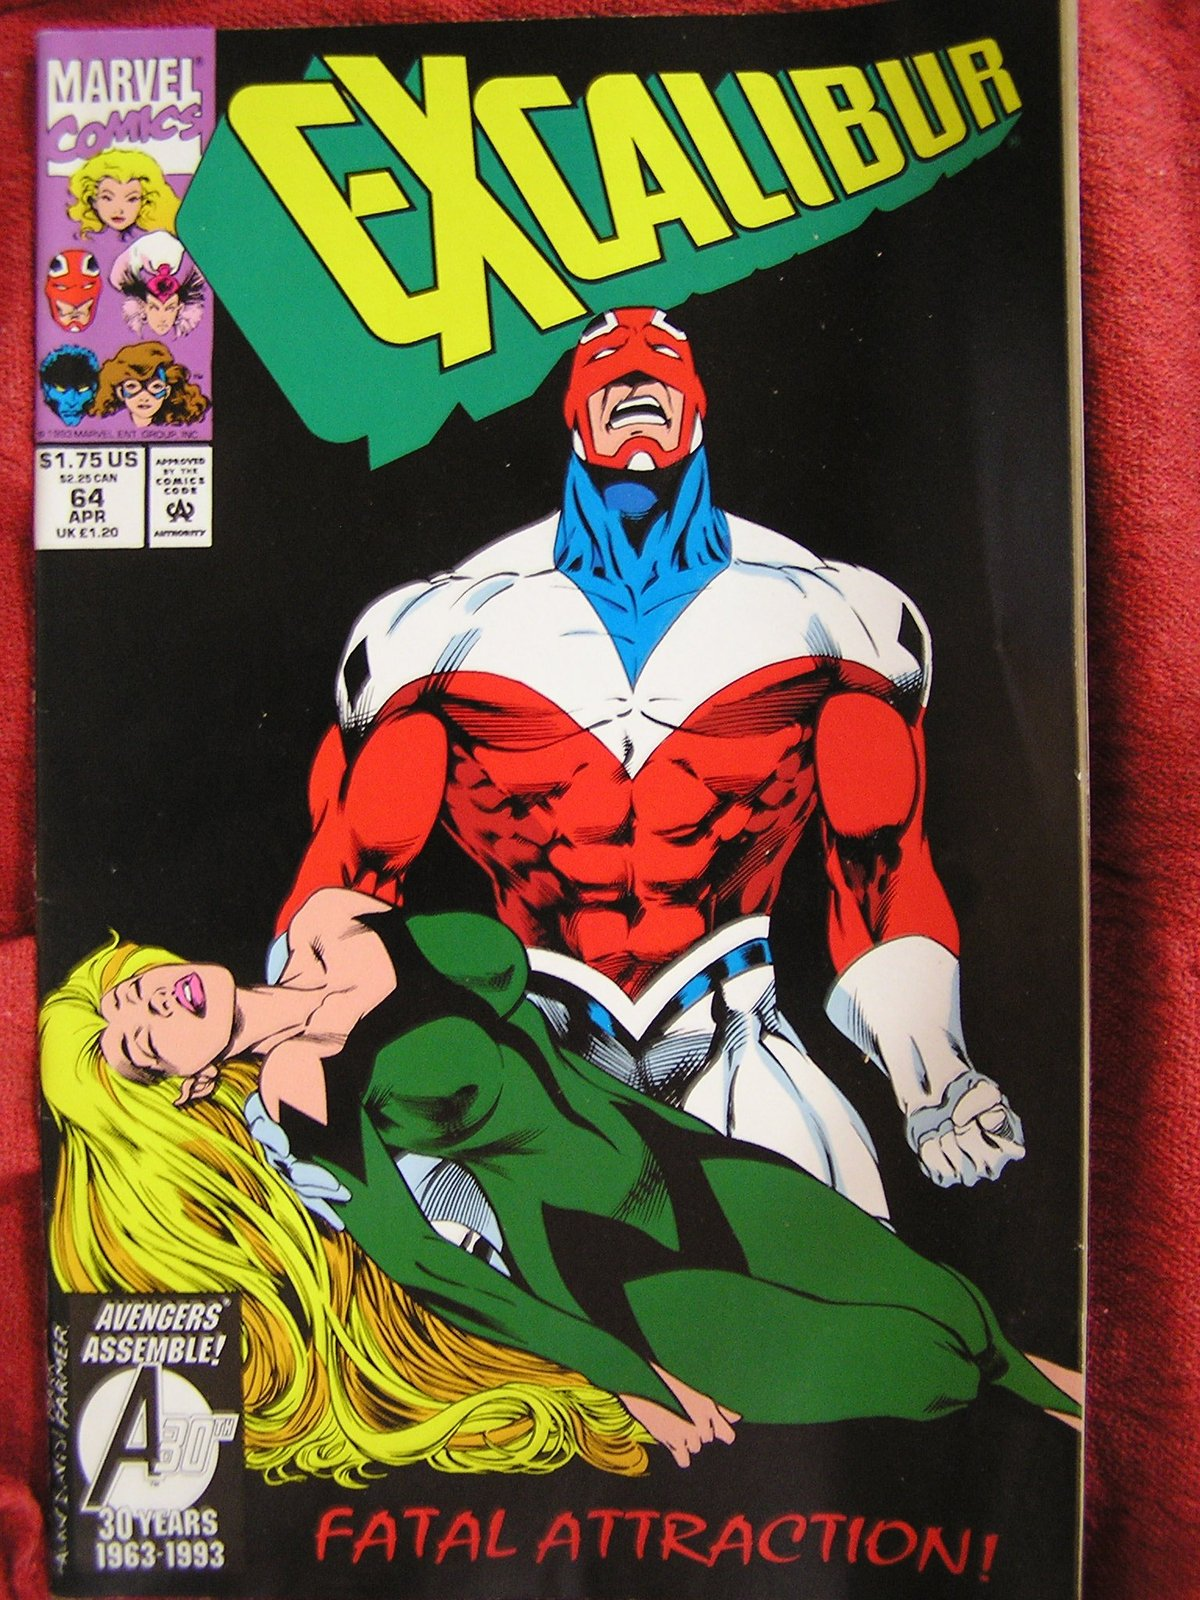 Excalibur Vol 1 No 64 [Paperback] [Jan 01, 1900] Marvel Comics